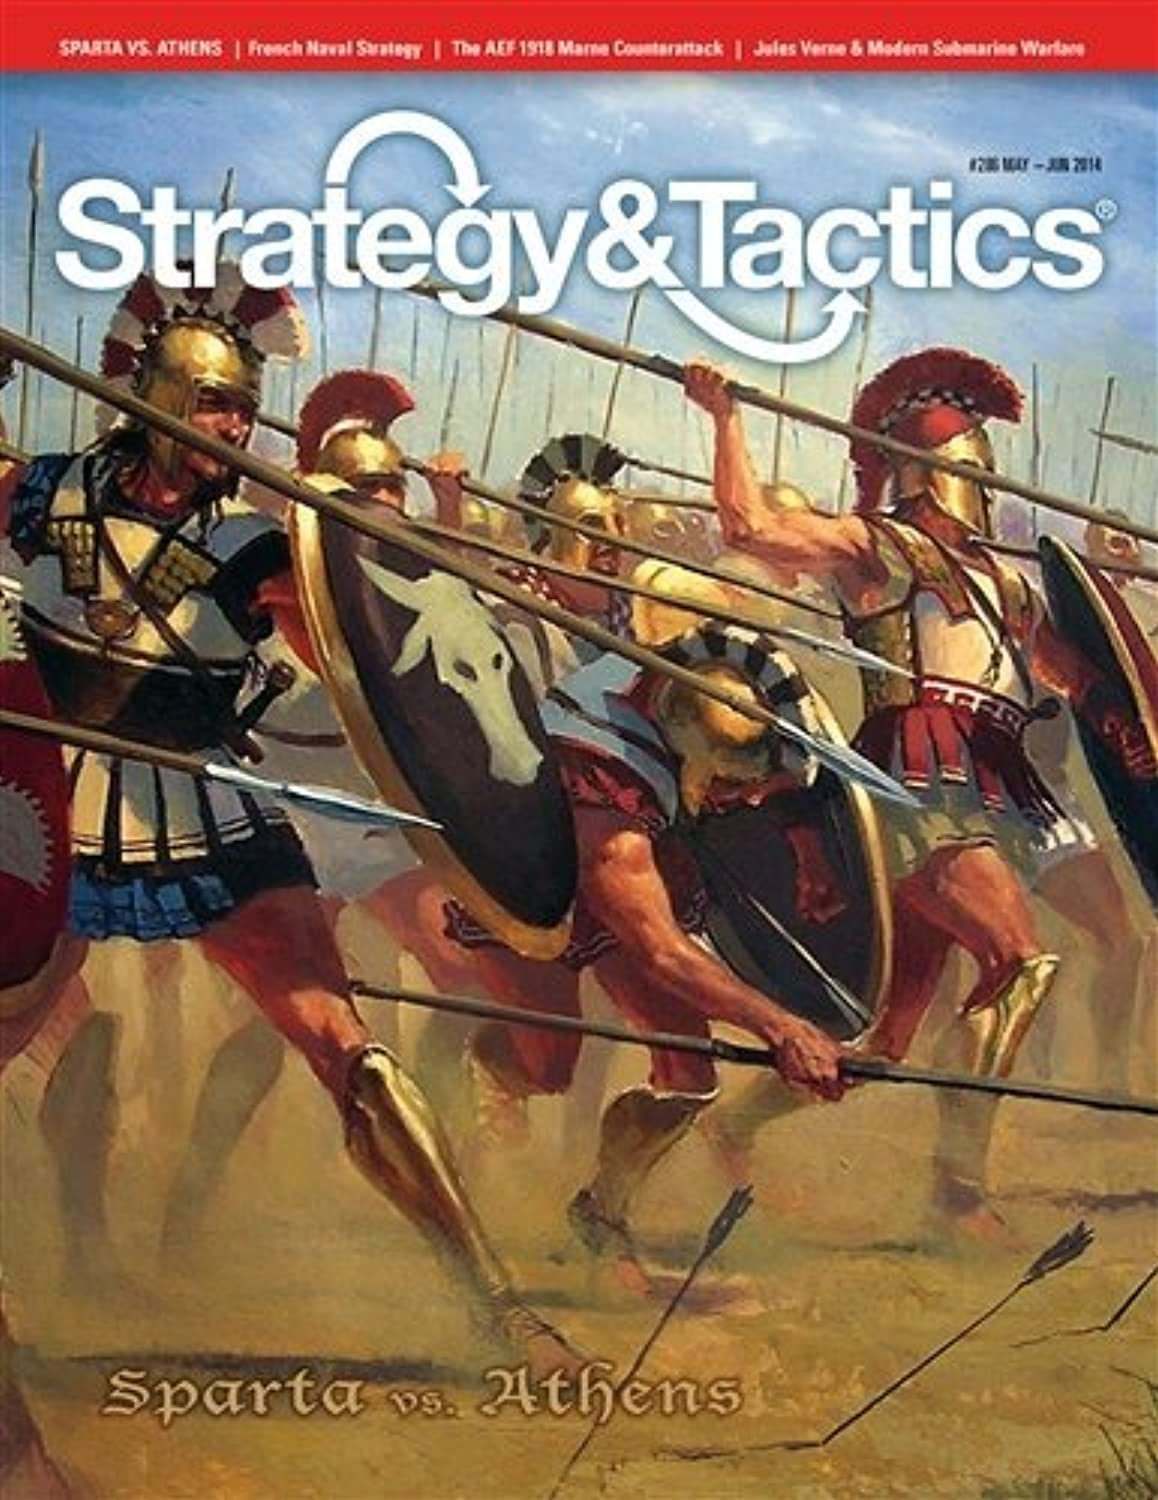 Decision Games S&T Magazine DG  Strategy & Tactics Zeitschrift   286, with Sparta Vs. Athens Boardgame